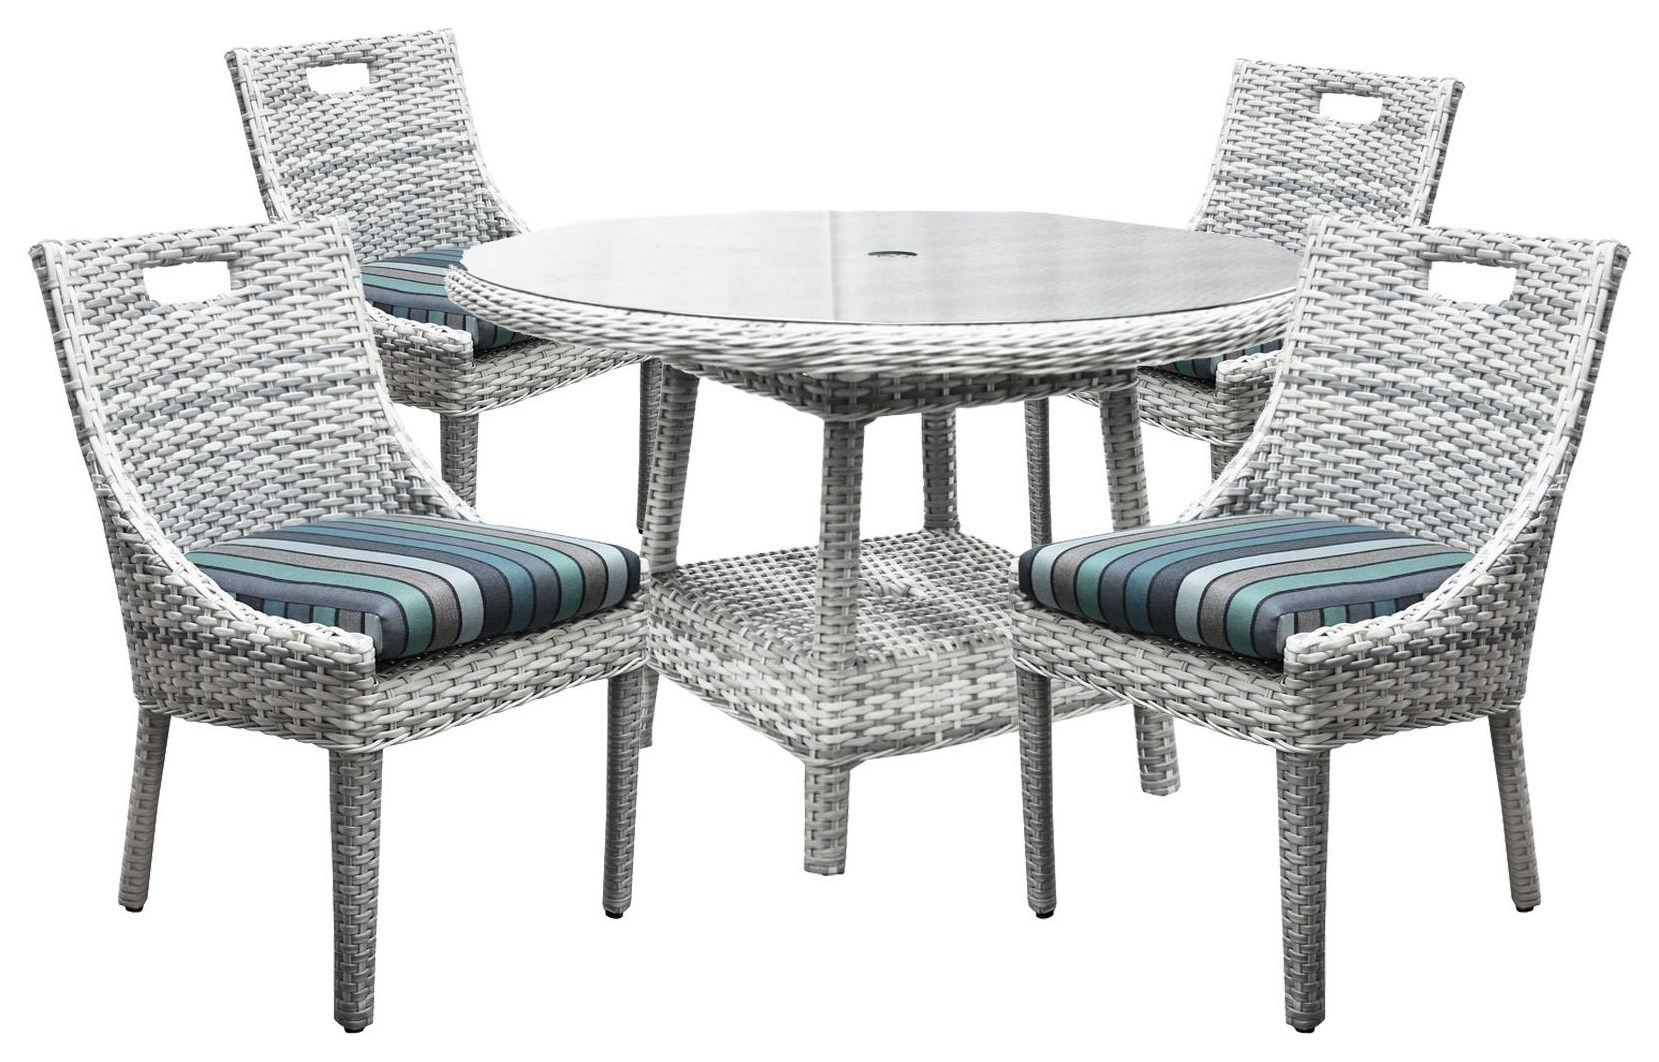 South Beach Dining Table and 4 Side Chairs by BeachCraft at Johnny Janosik